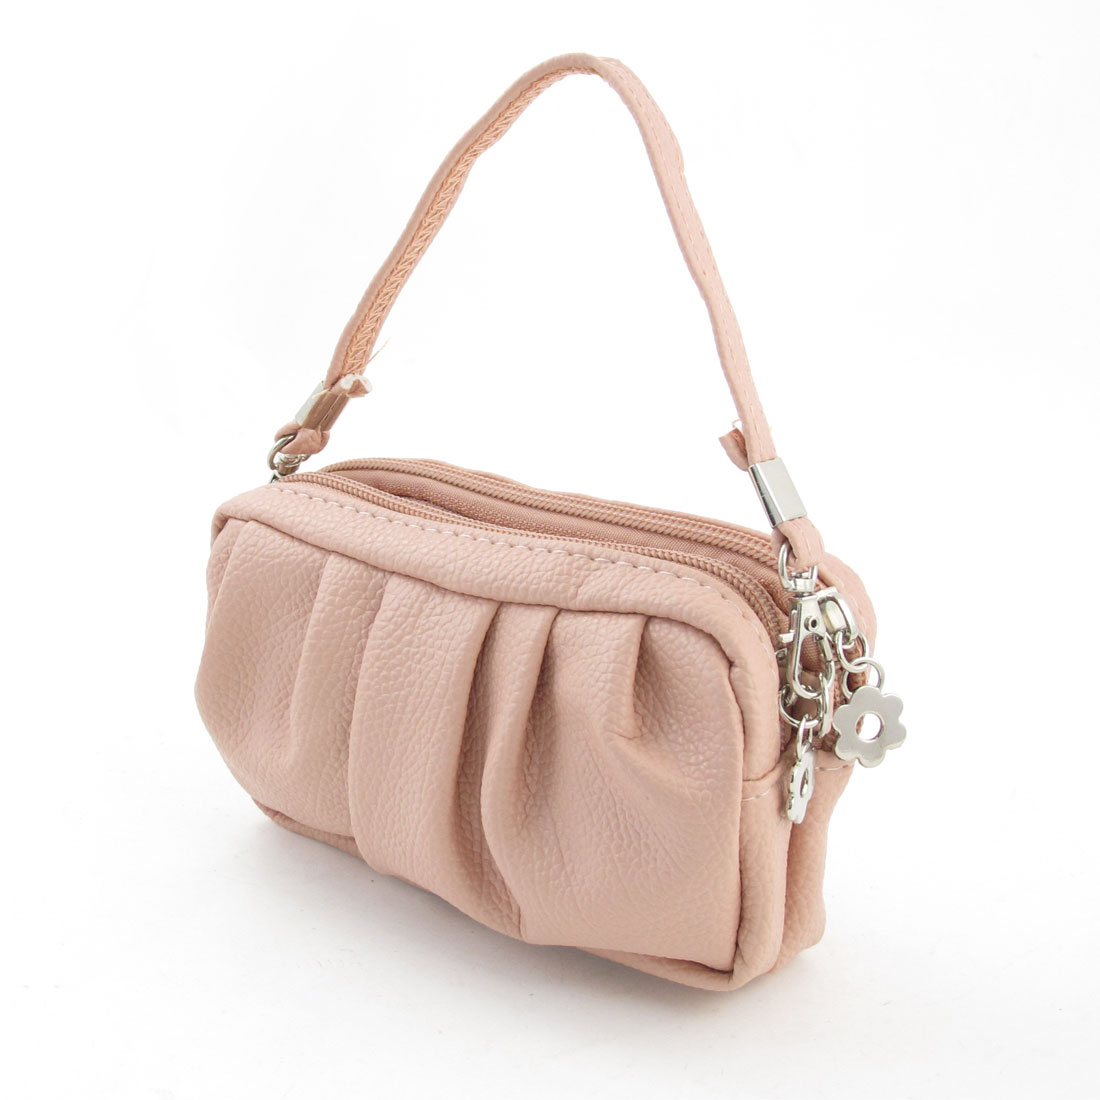 Pale Pink Zip Up Litchi Pattern Faux Leather Handbag Purse for Lady